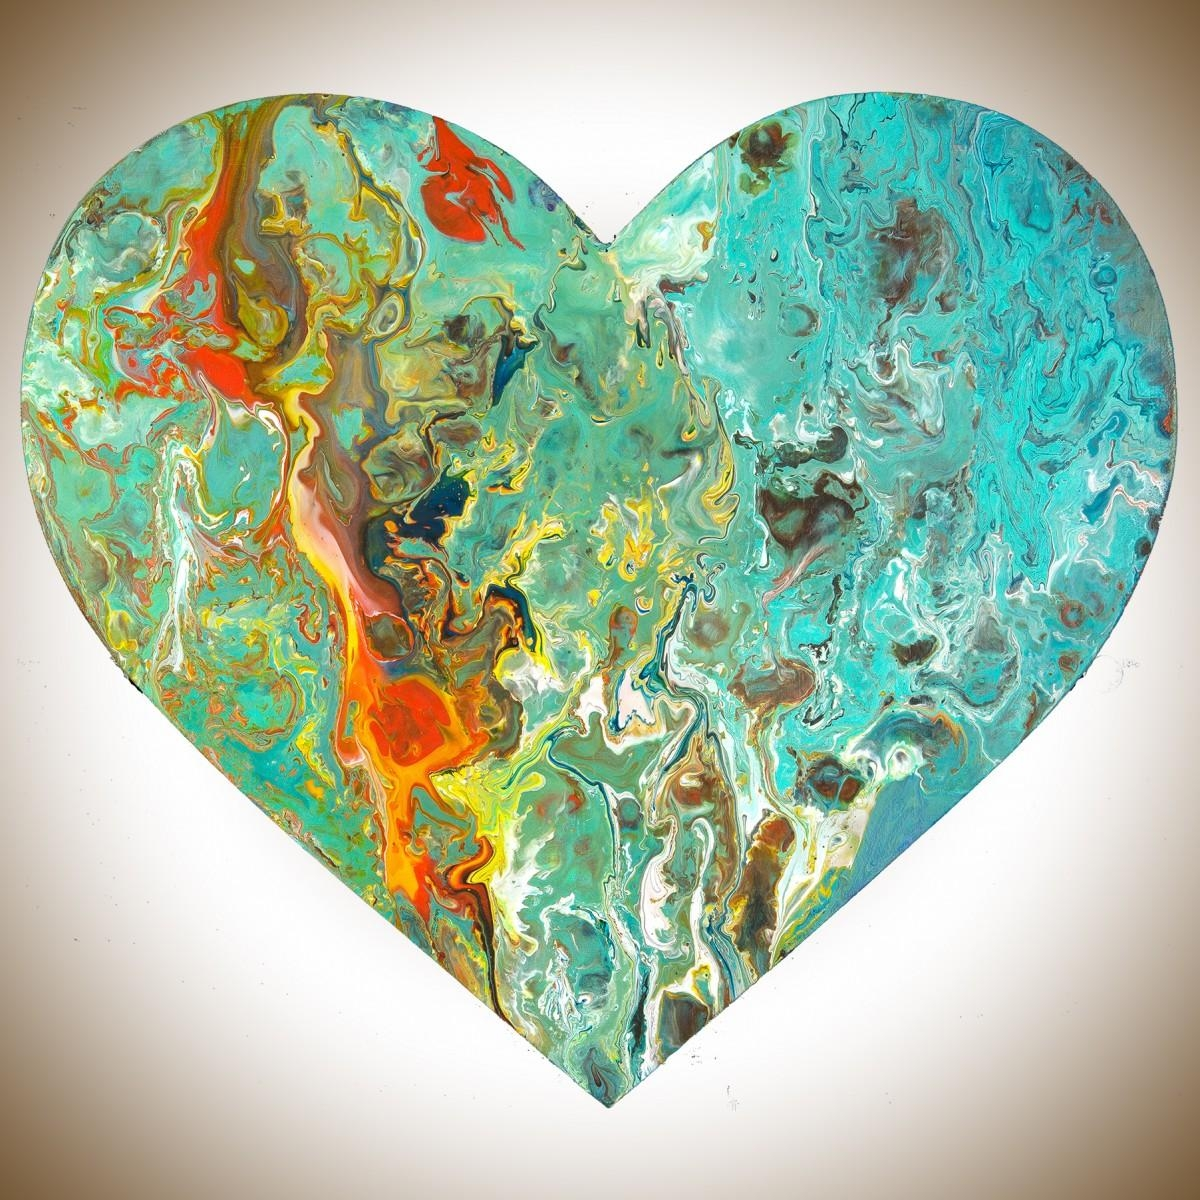 "Heart 8Qiqigallery 9""x9"" Heart Shaped Painting Wooden Heart within Red and Turquoise Wall Art"